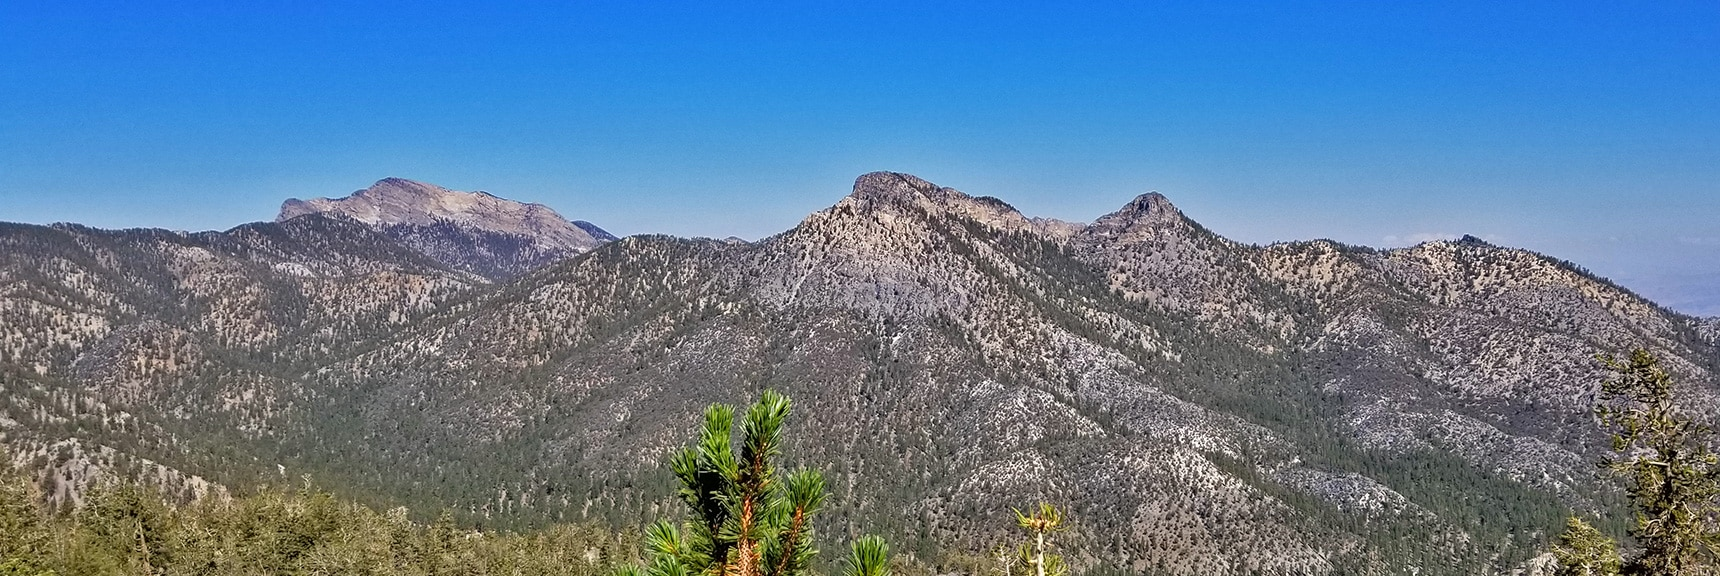 Looking Back Across Lee Canyon to Bonanza Trail Ridge, McFarland Peak and Sisters.   Mummy Mountain Summit Approach from Lee Canyon   Mt. Charleston Wilderness   Spring Mountains, Nevada